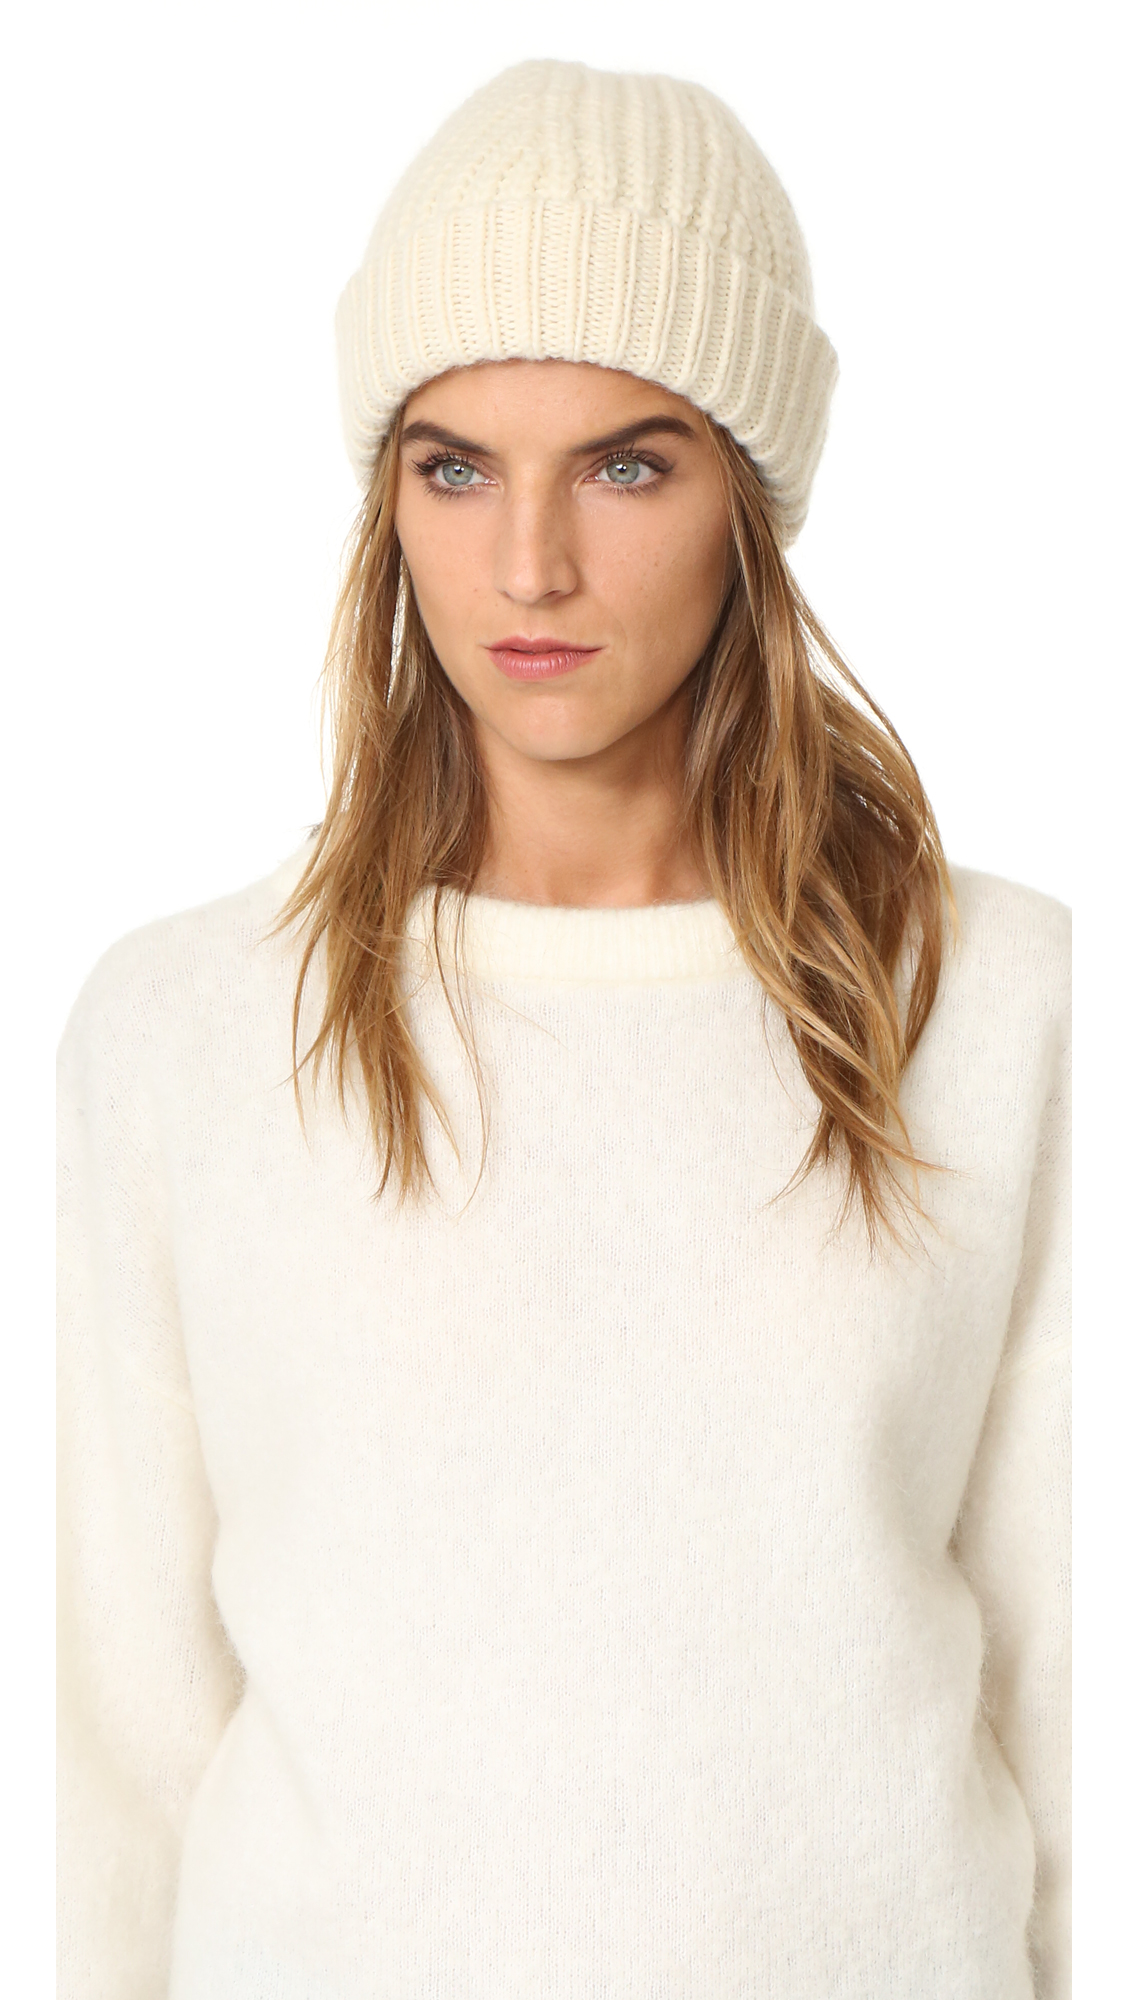 Acne Studios Chunky Hoy Hat - Off White at Shopbop